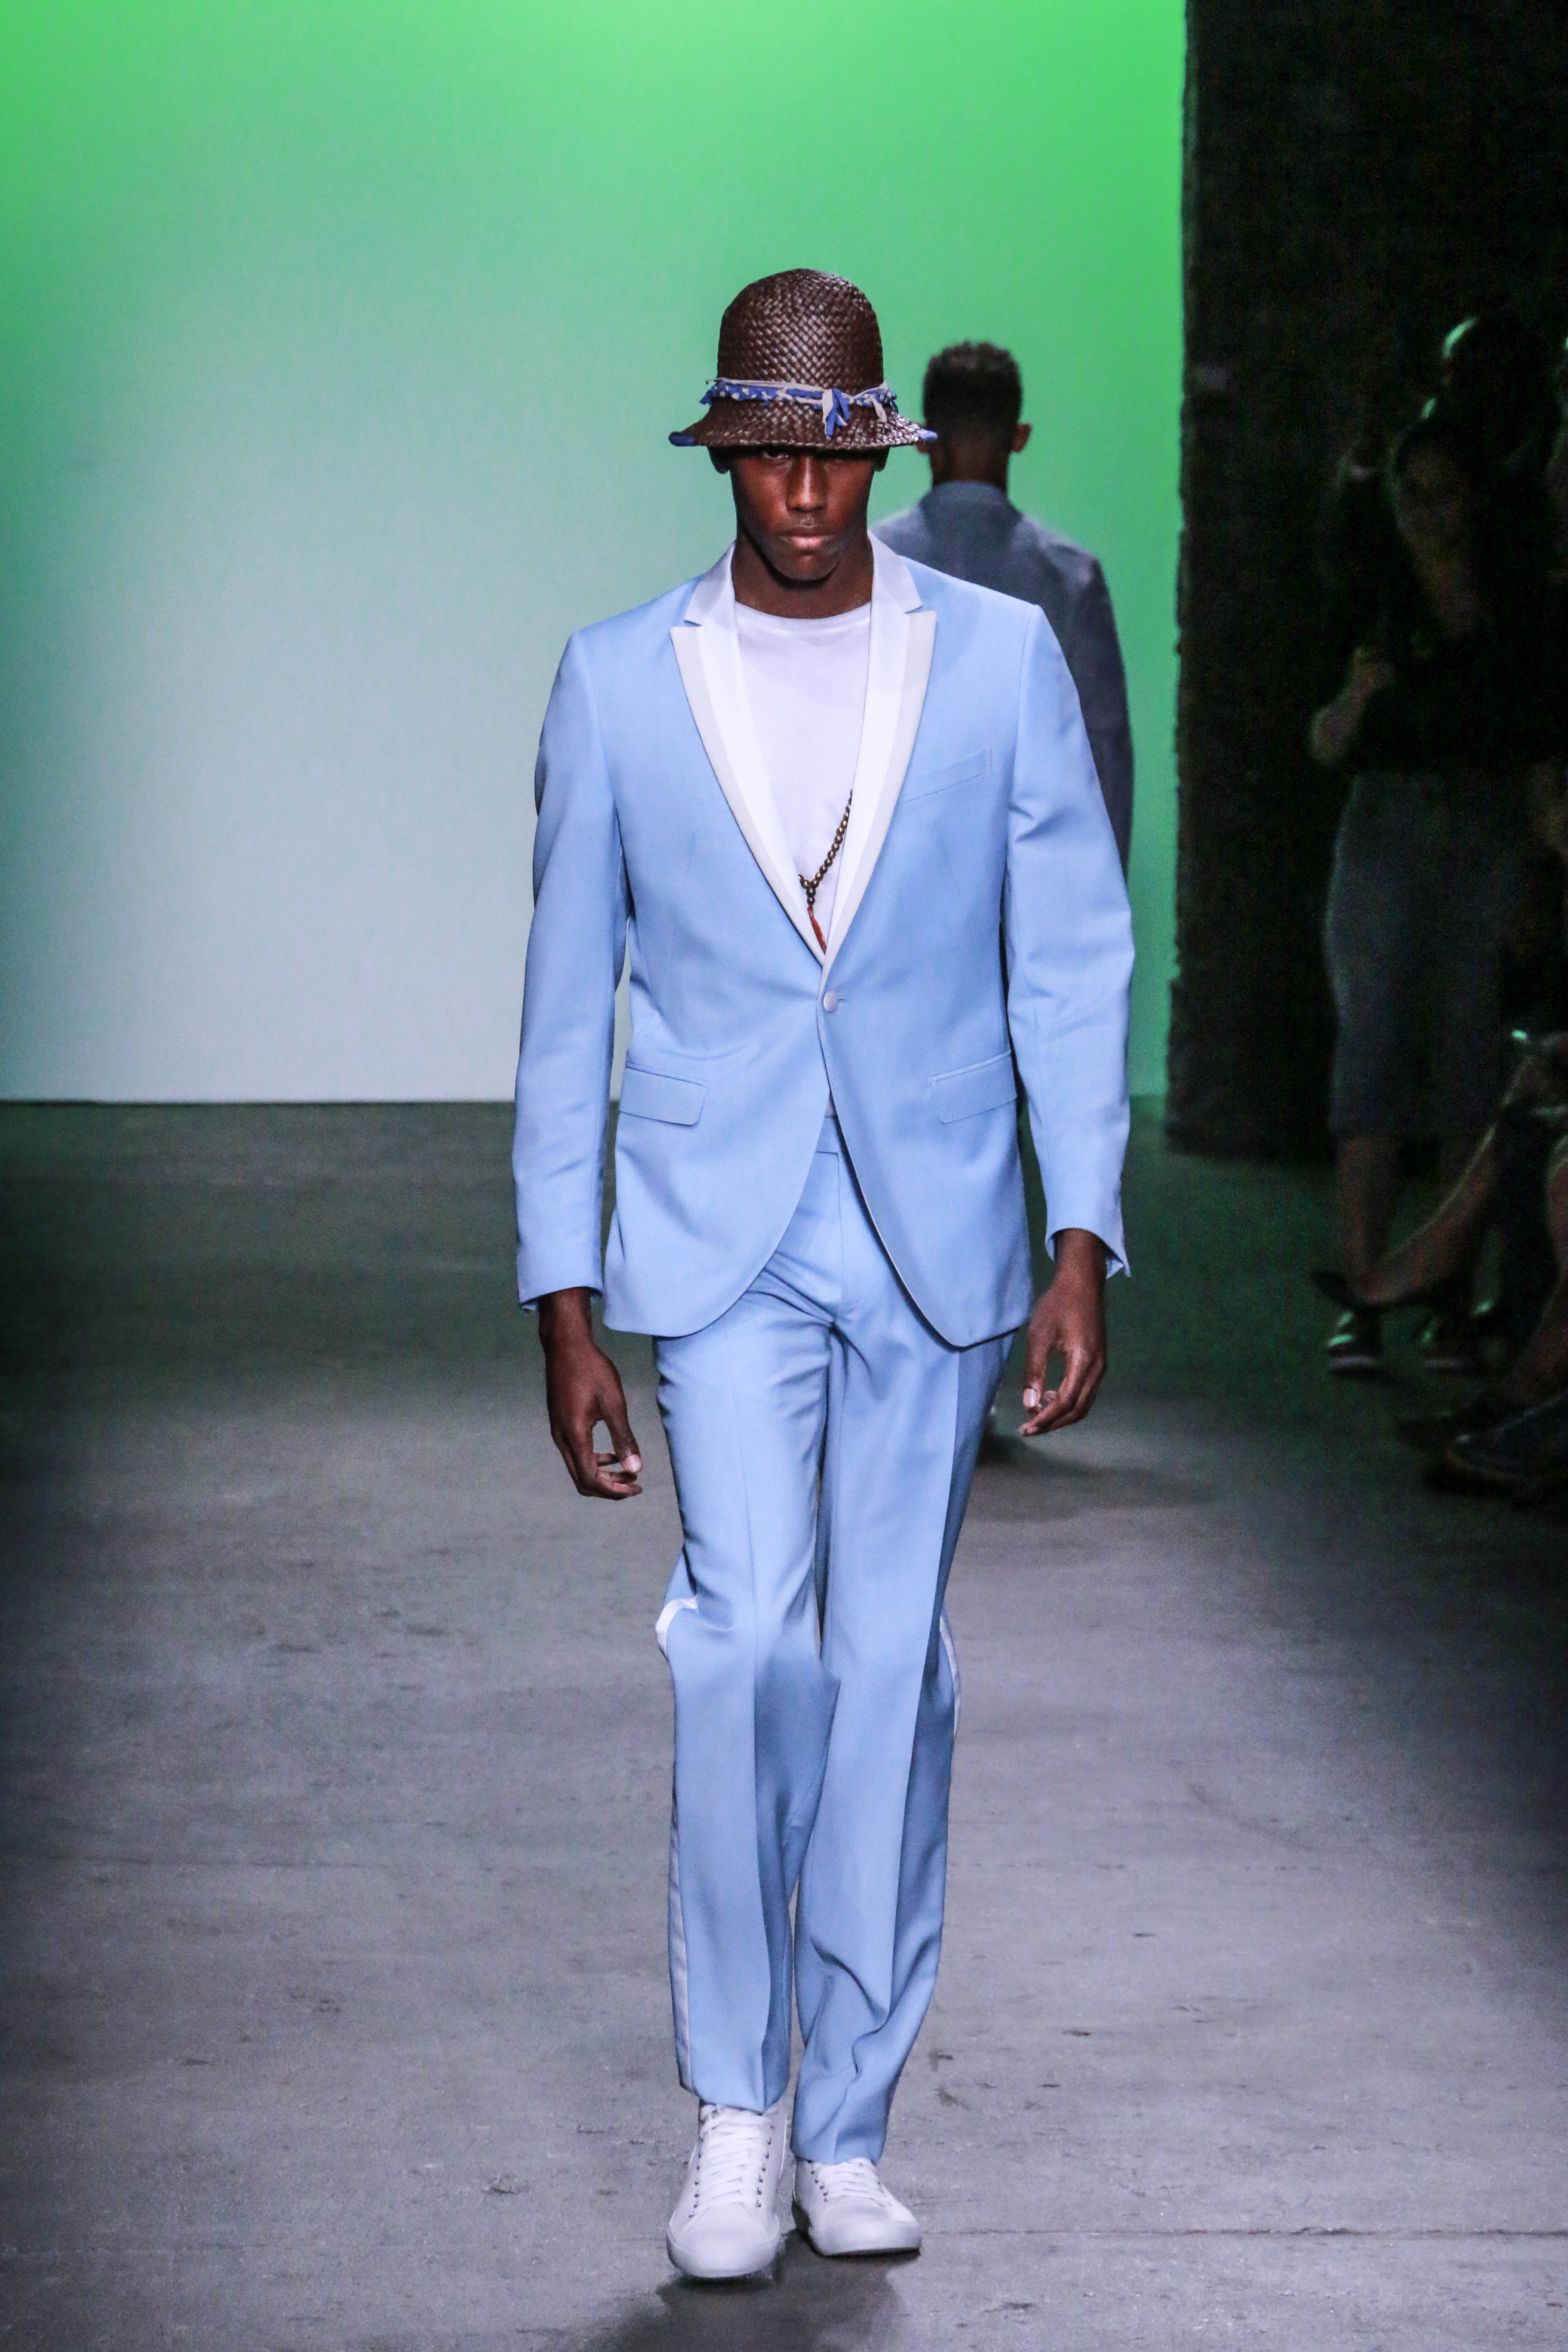 Asaf-Ganot-spring-summer-2016-mens-fashion-week